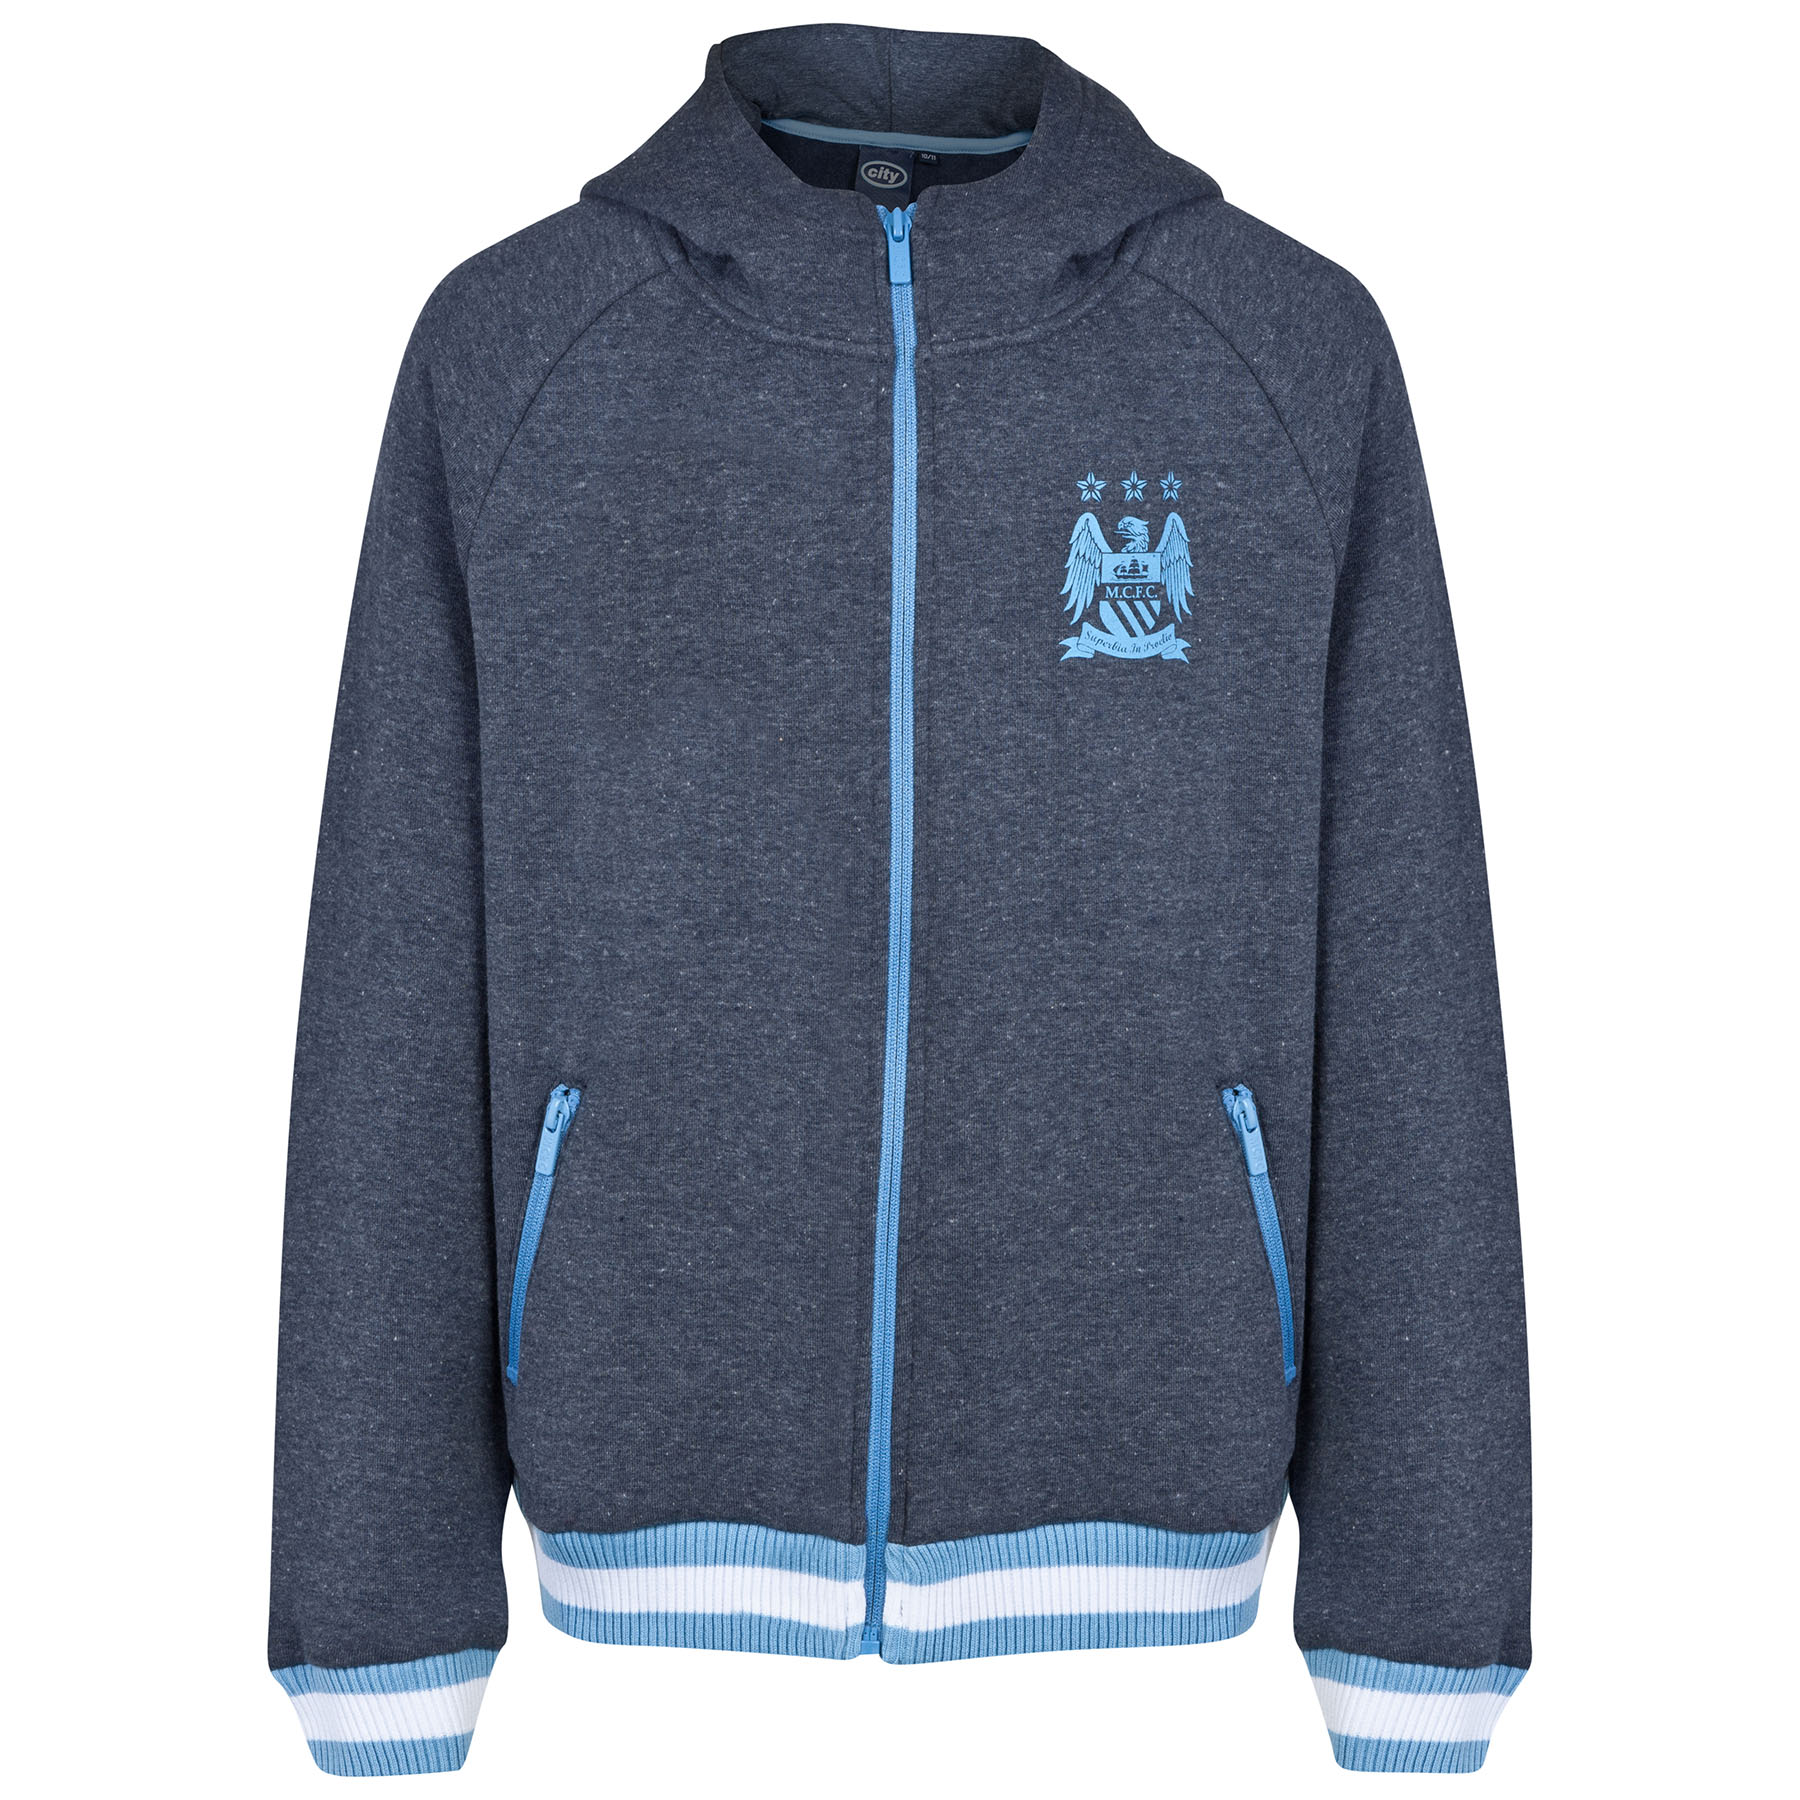 Manchester City Classic Hoodie - Heather Navy - Older Boys